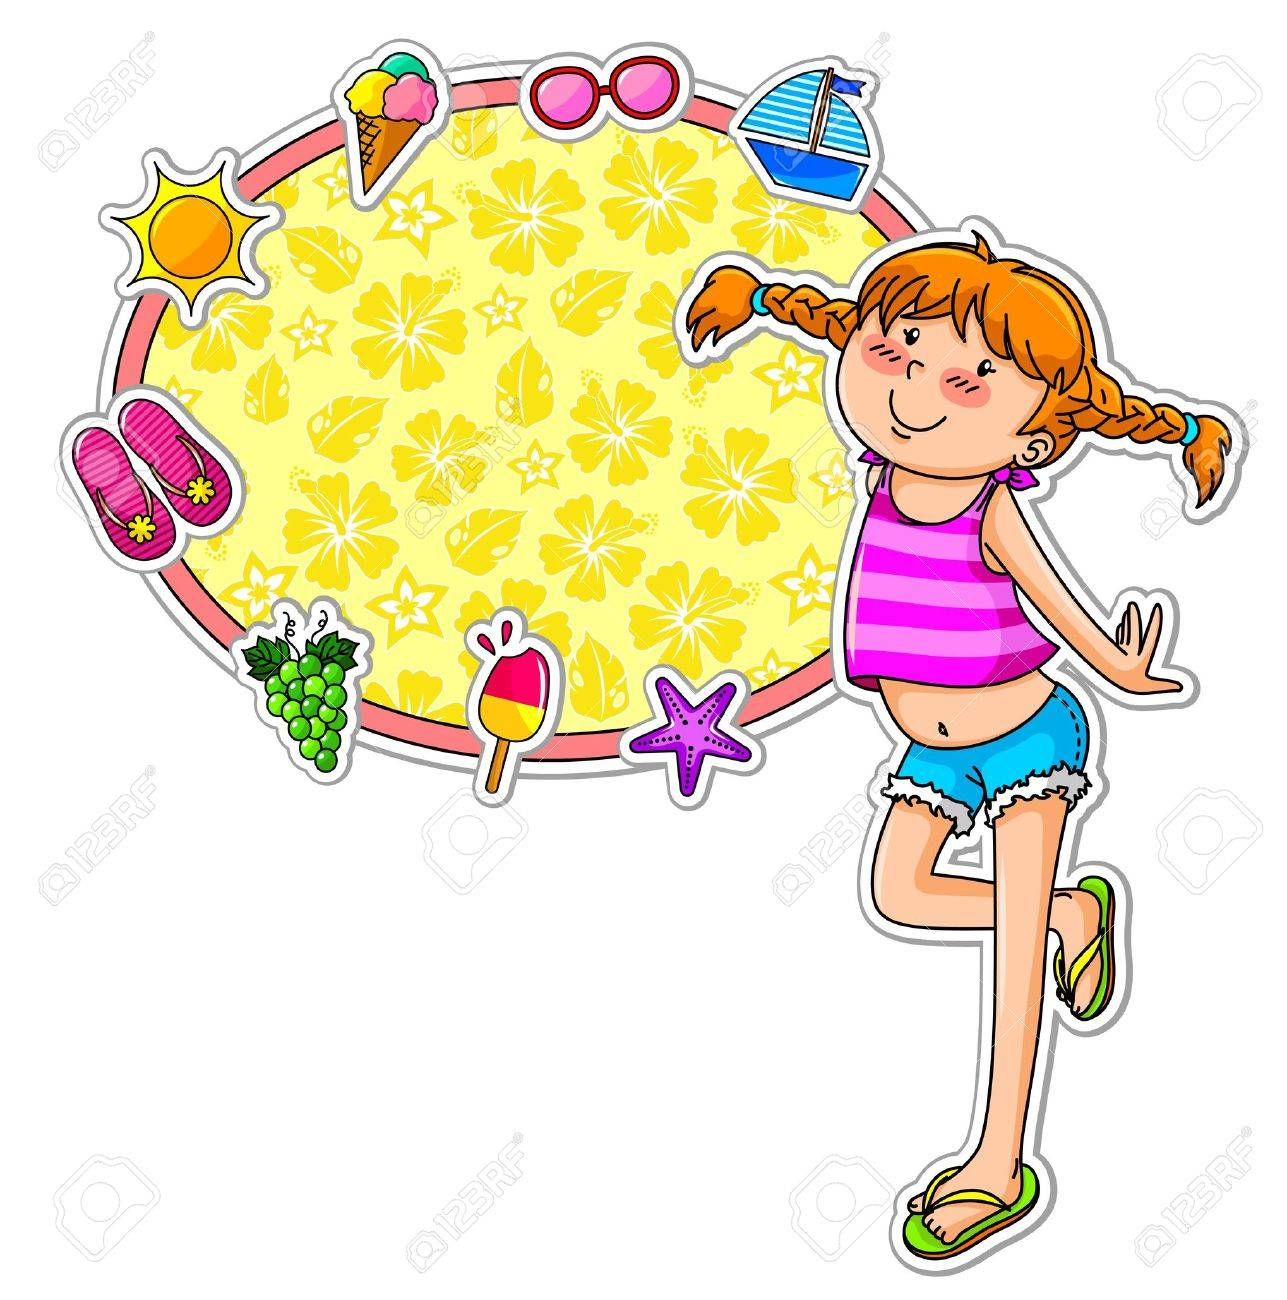 l in summer clothes standing next to a frame decorated with summer symbols Stock Vector - 16511518